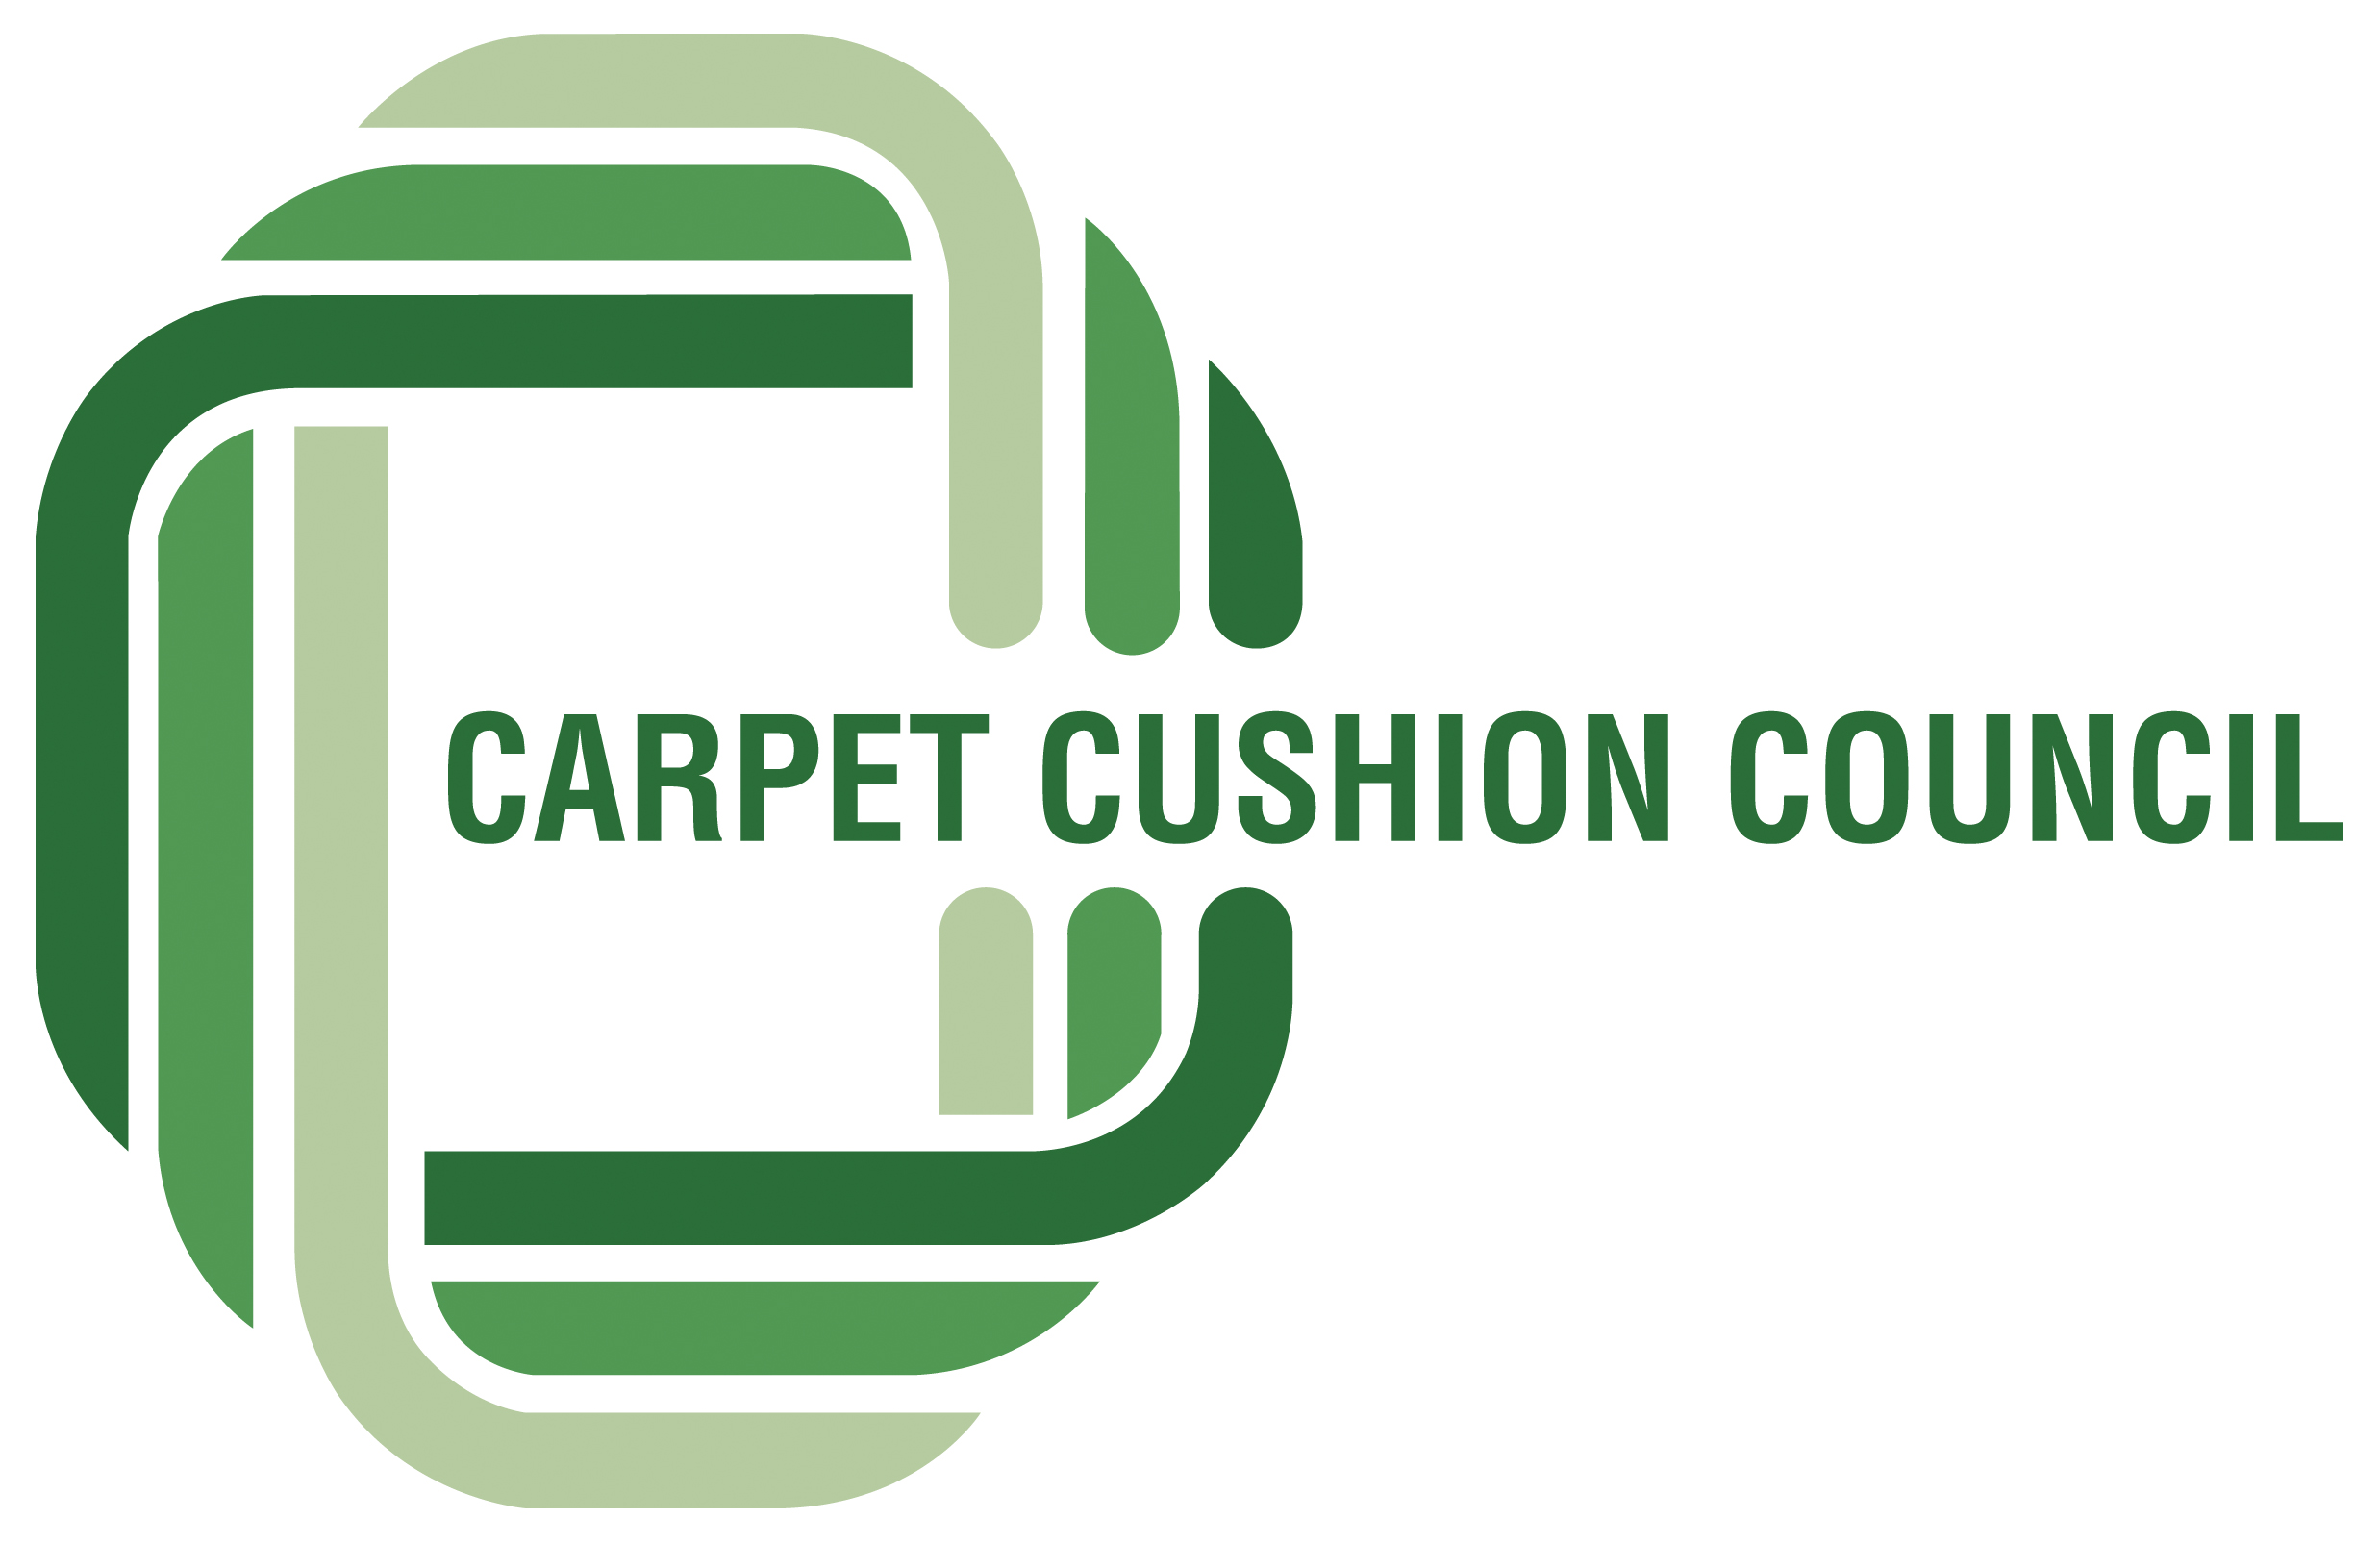 Carpet Cushion Council - Cushion Types